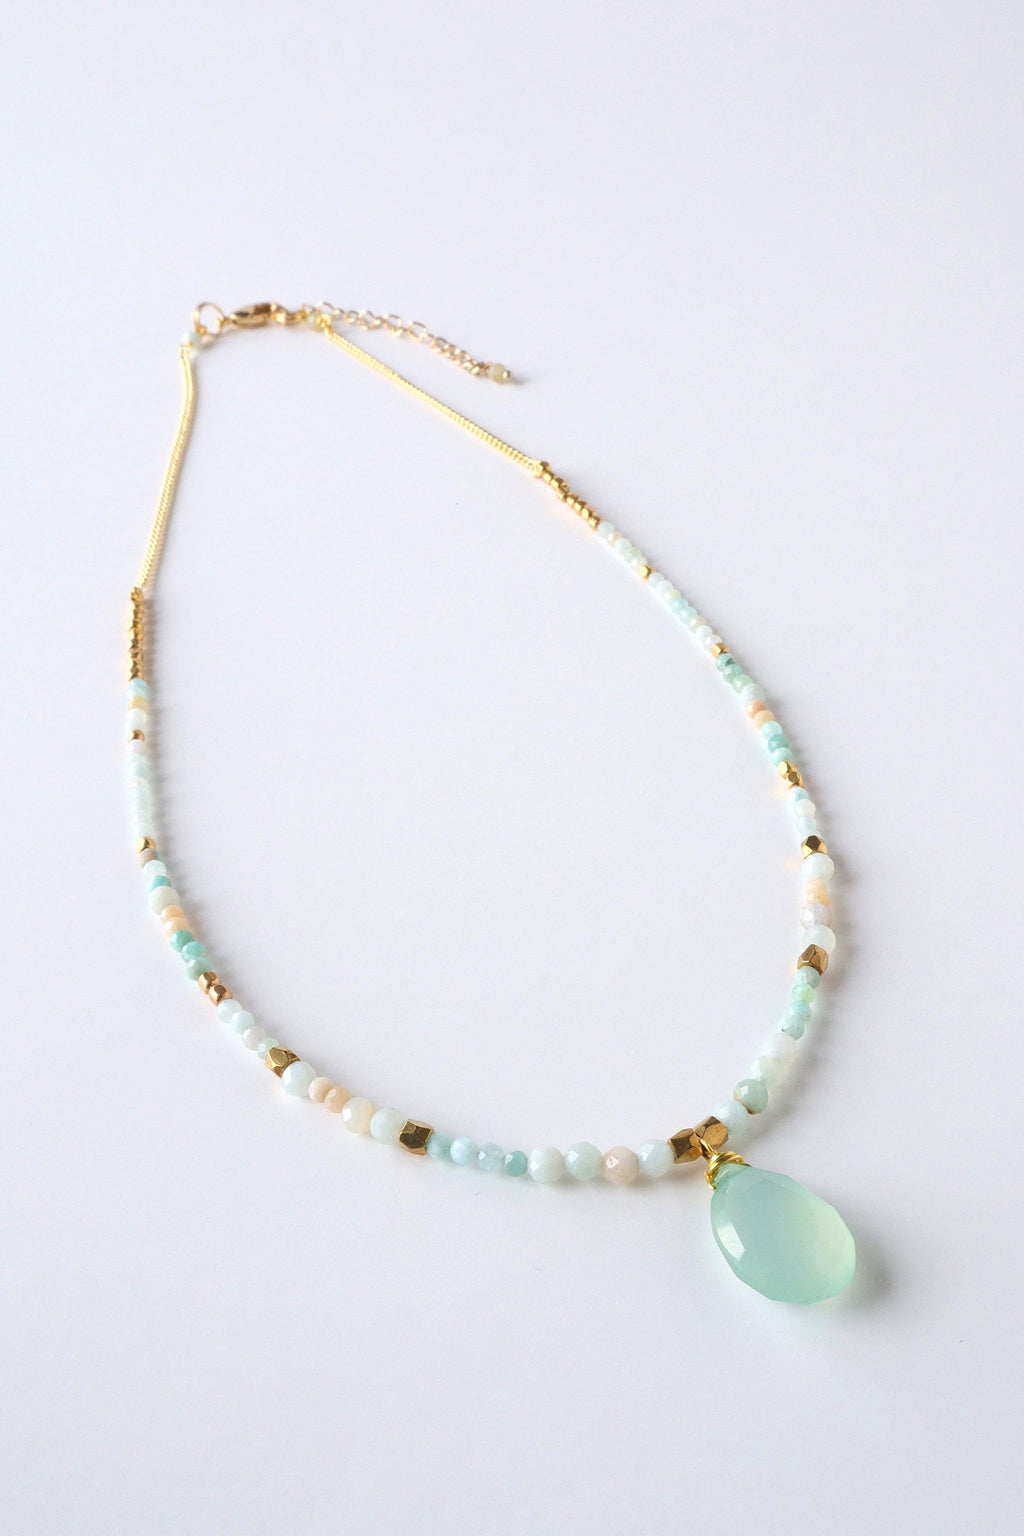 The Mia necklace is a single strand faceted gemstone necklace, features an aquamarine gemstone pendant.